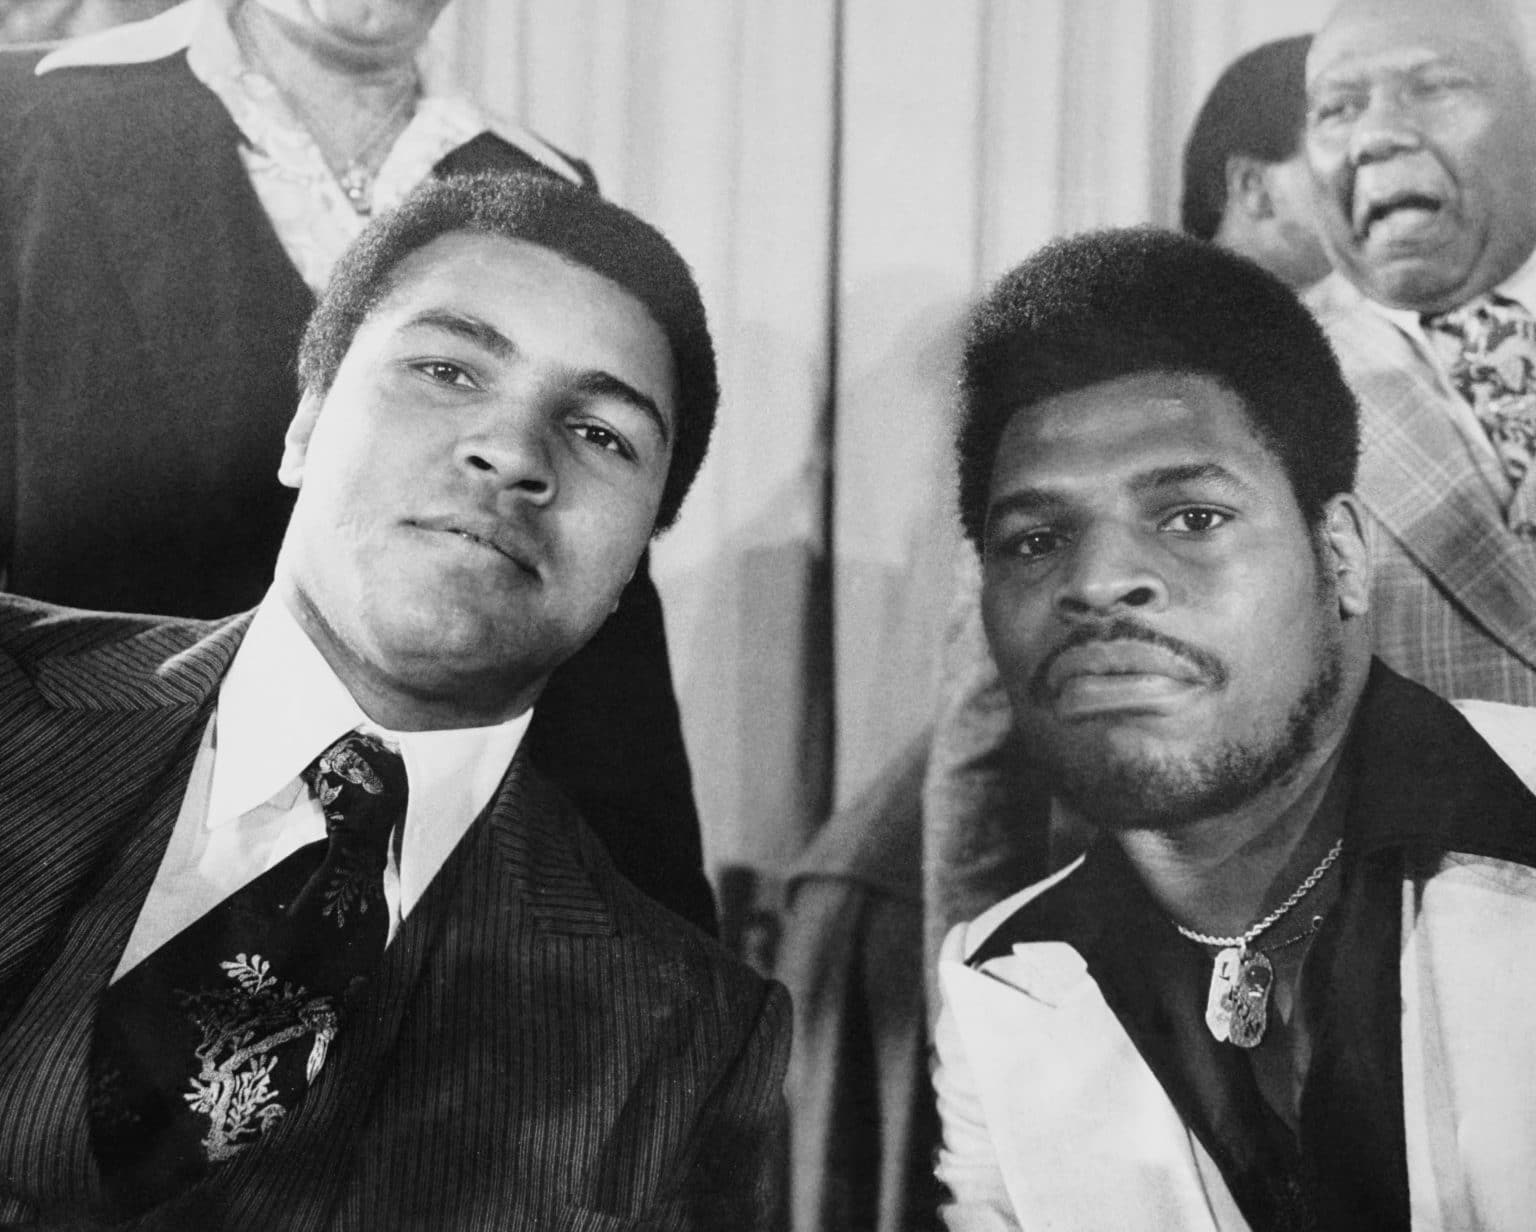 Former heavyweight champ who beat Muhammad Ali, dead at 67